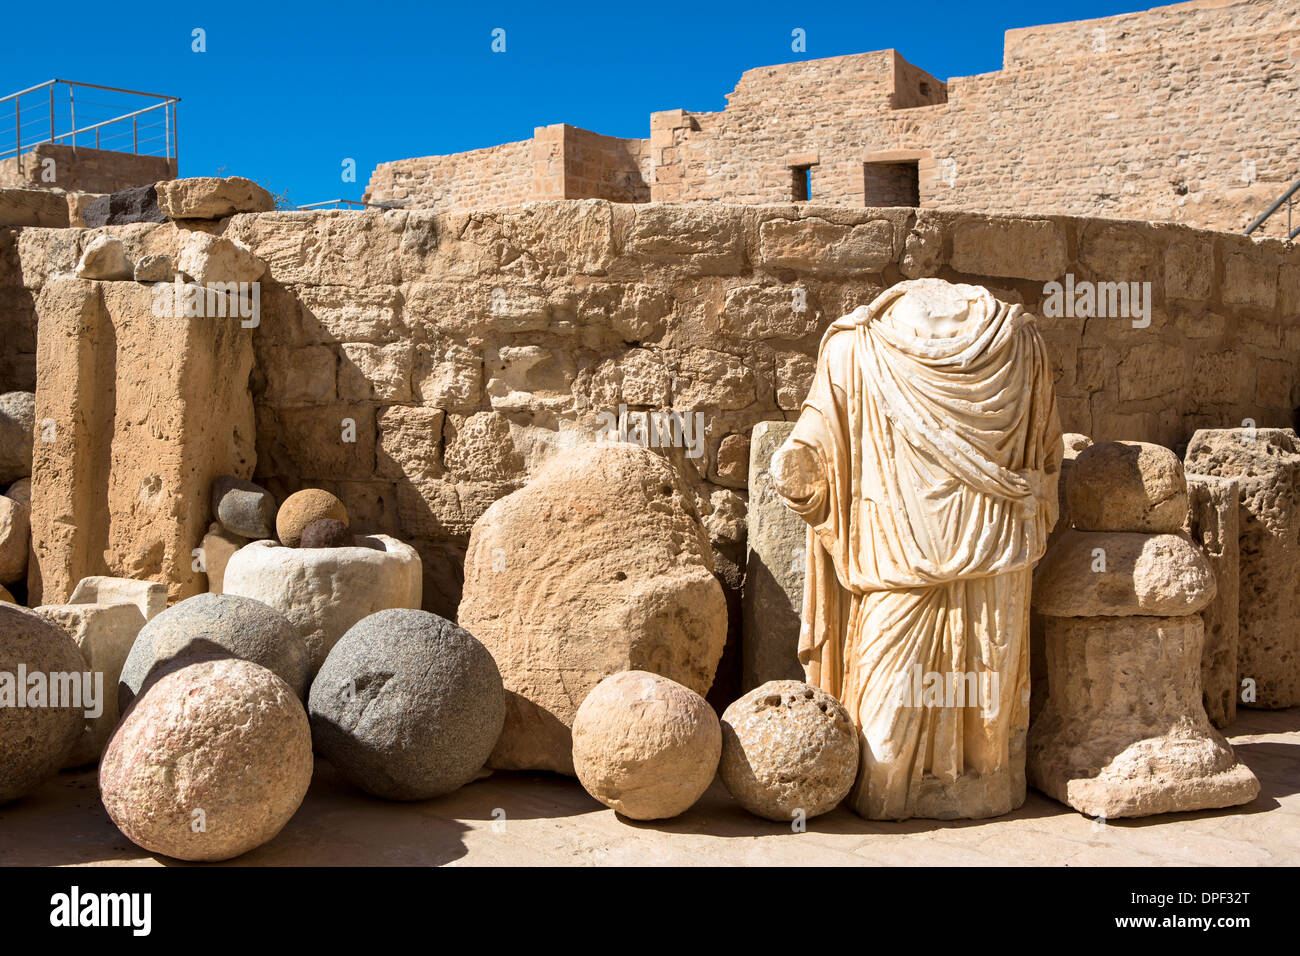 Artifacts at old fort, Djerba, Tunisia - Stock Image